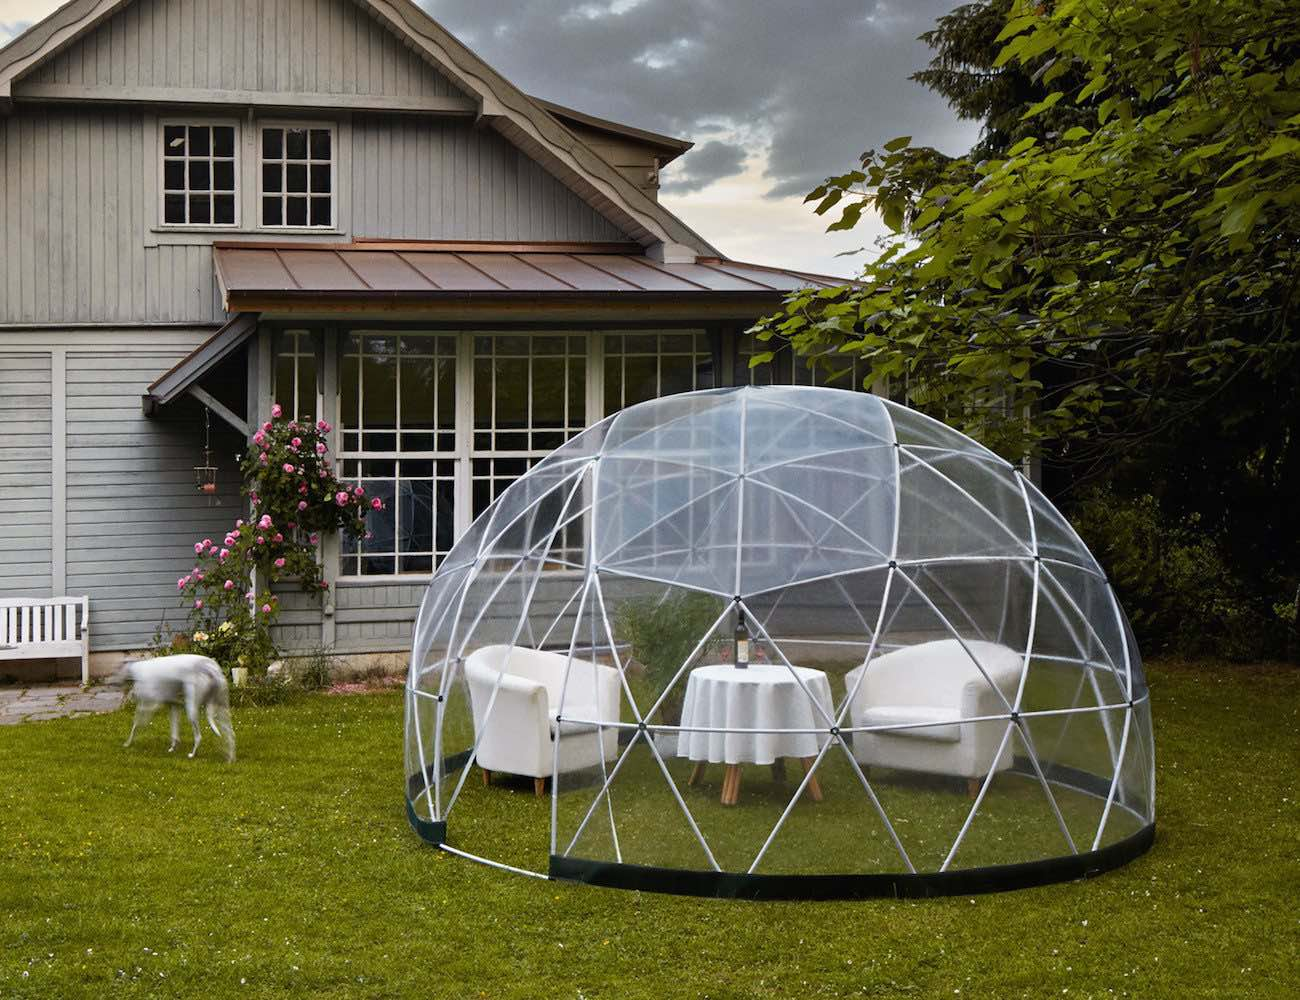 Garden igloo outdoor living space for your garden for Backyard patio landscaping